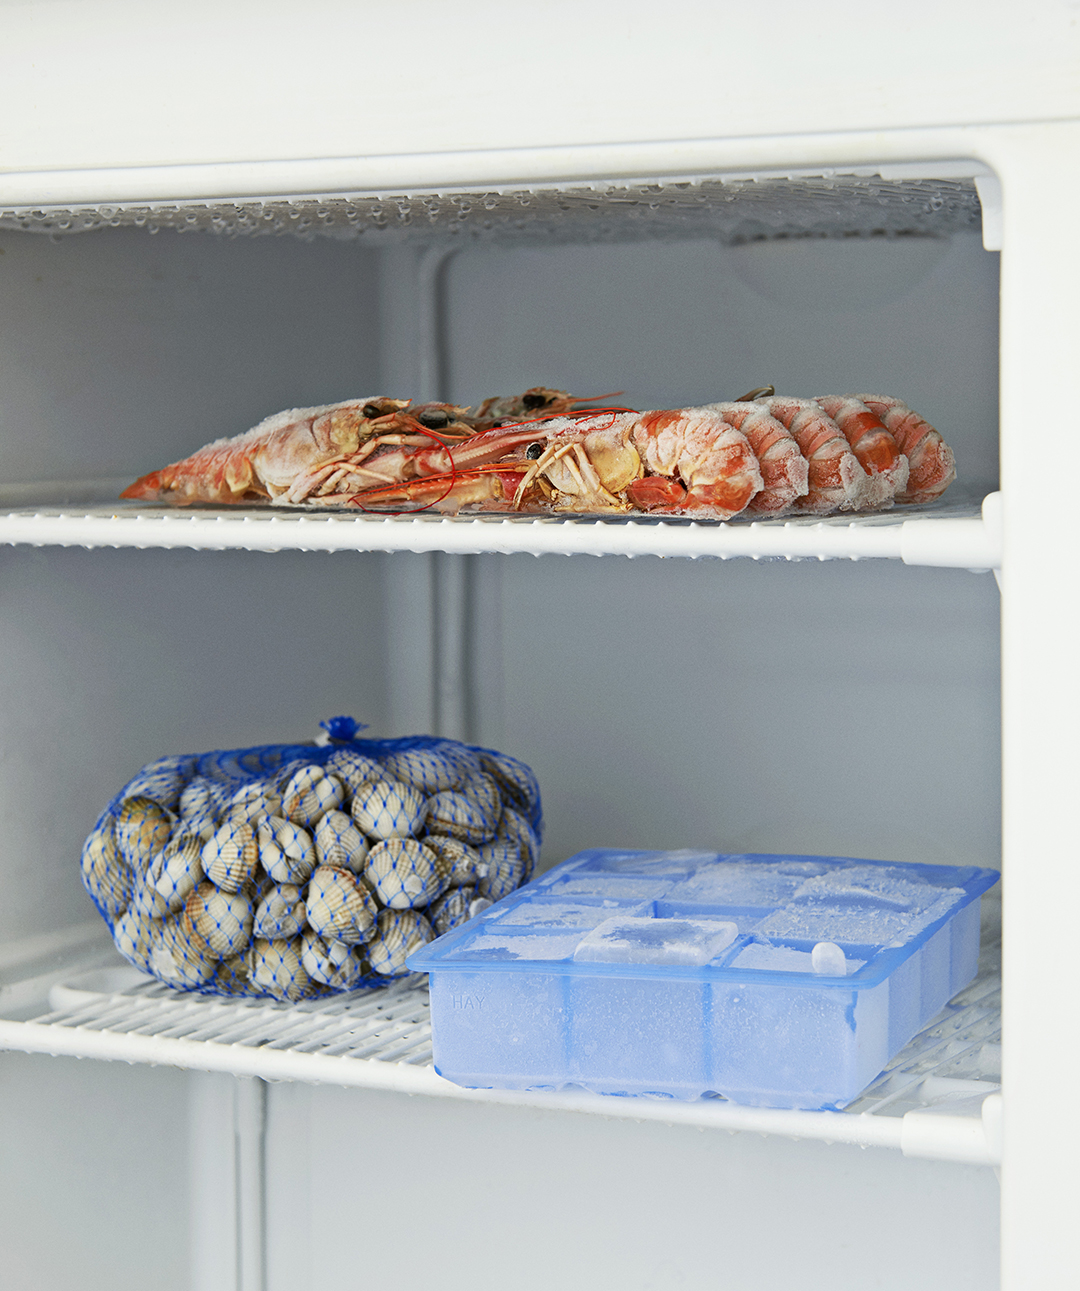 Ice Cube Tray in freezer